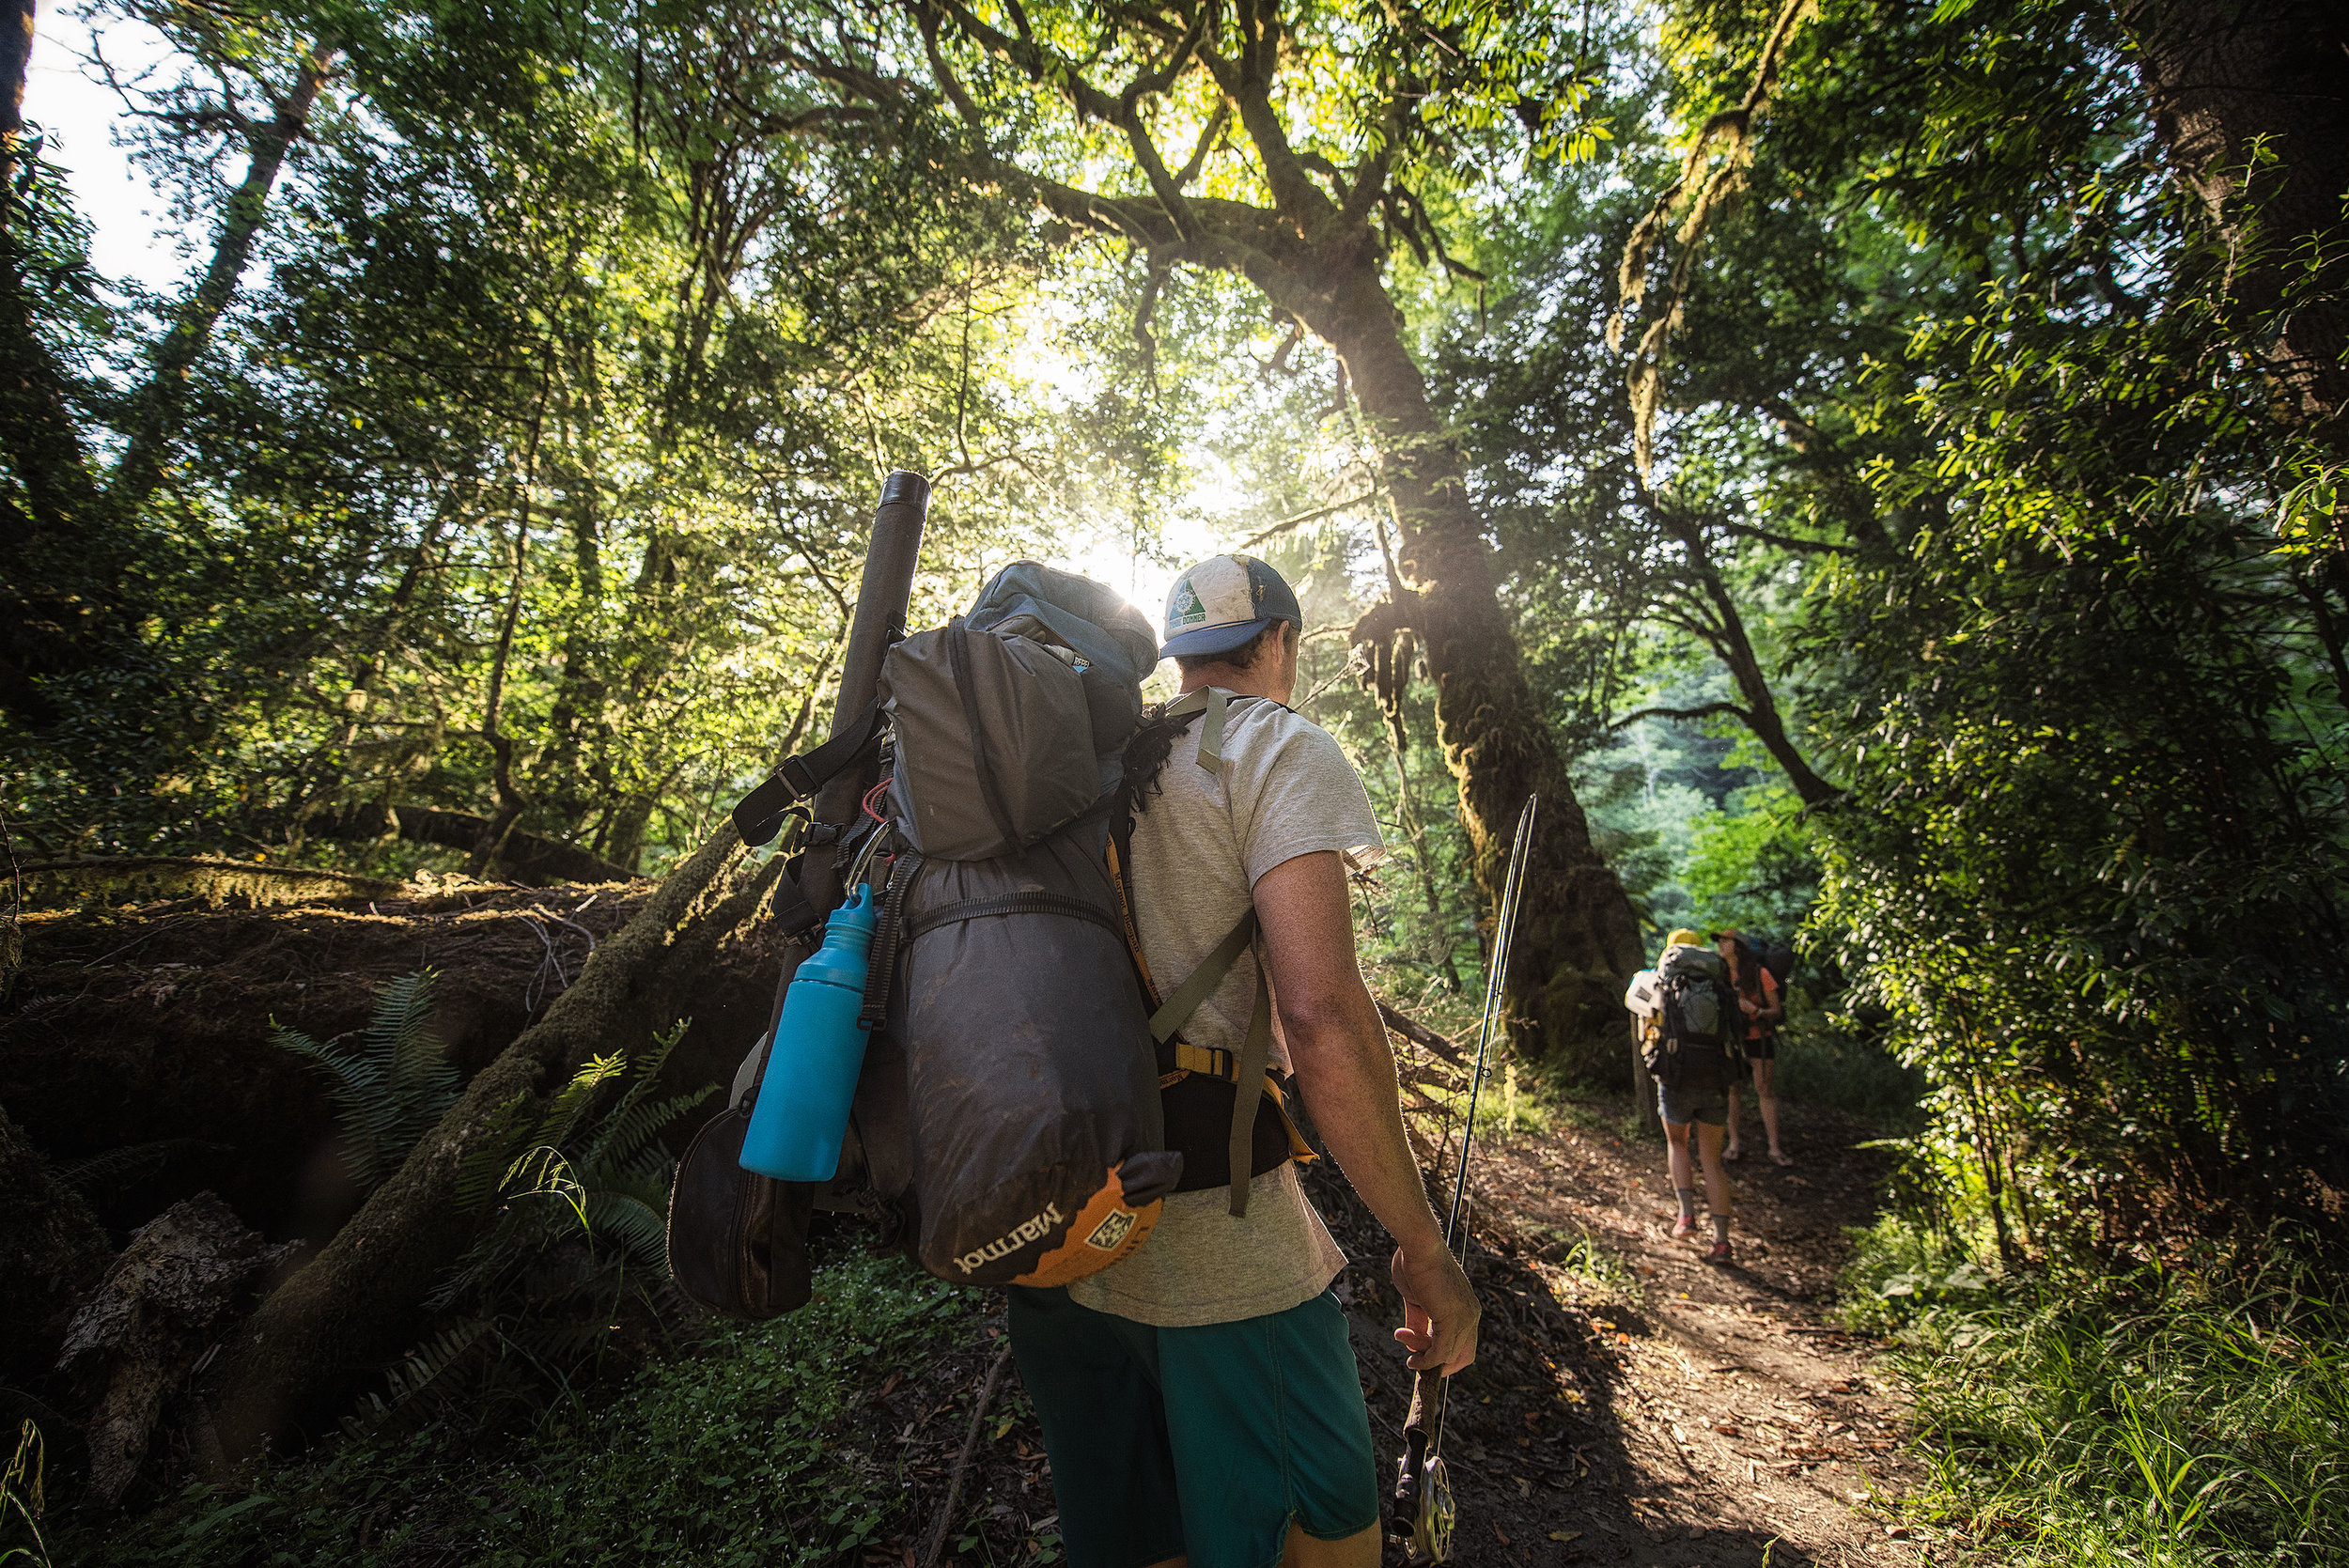 austin-trigg-redwood-water-bottle-hike-backpack-adventure-california-tall-tree-grove-forest.jpg